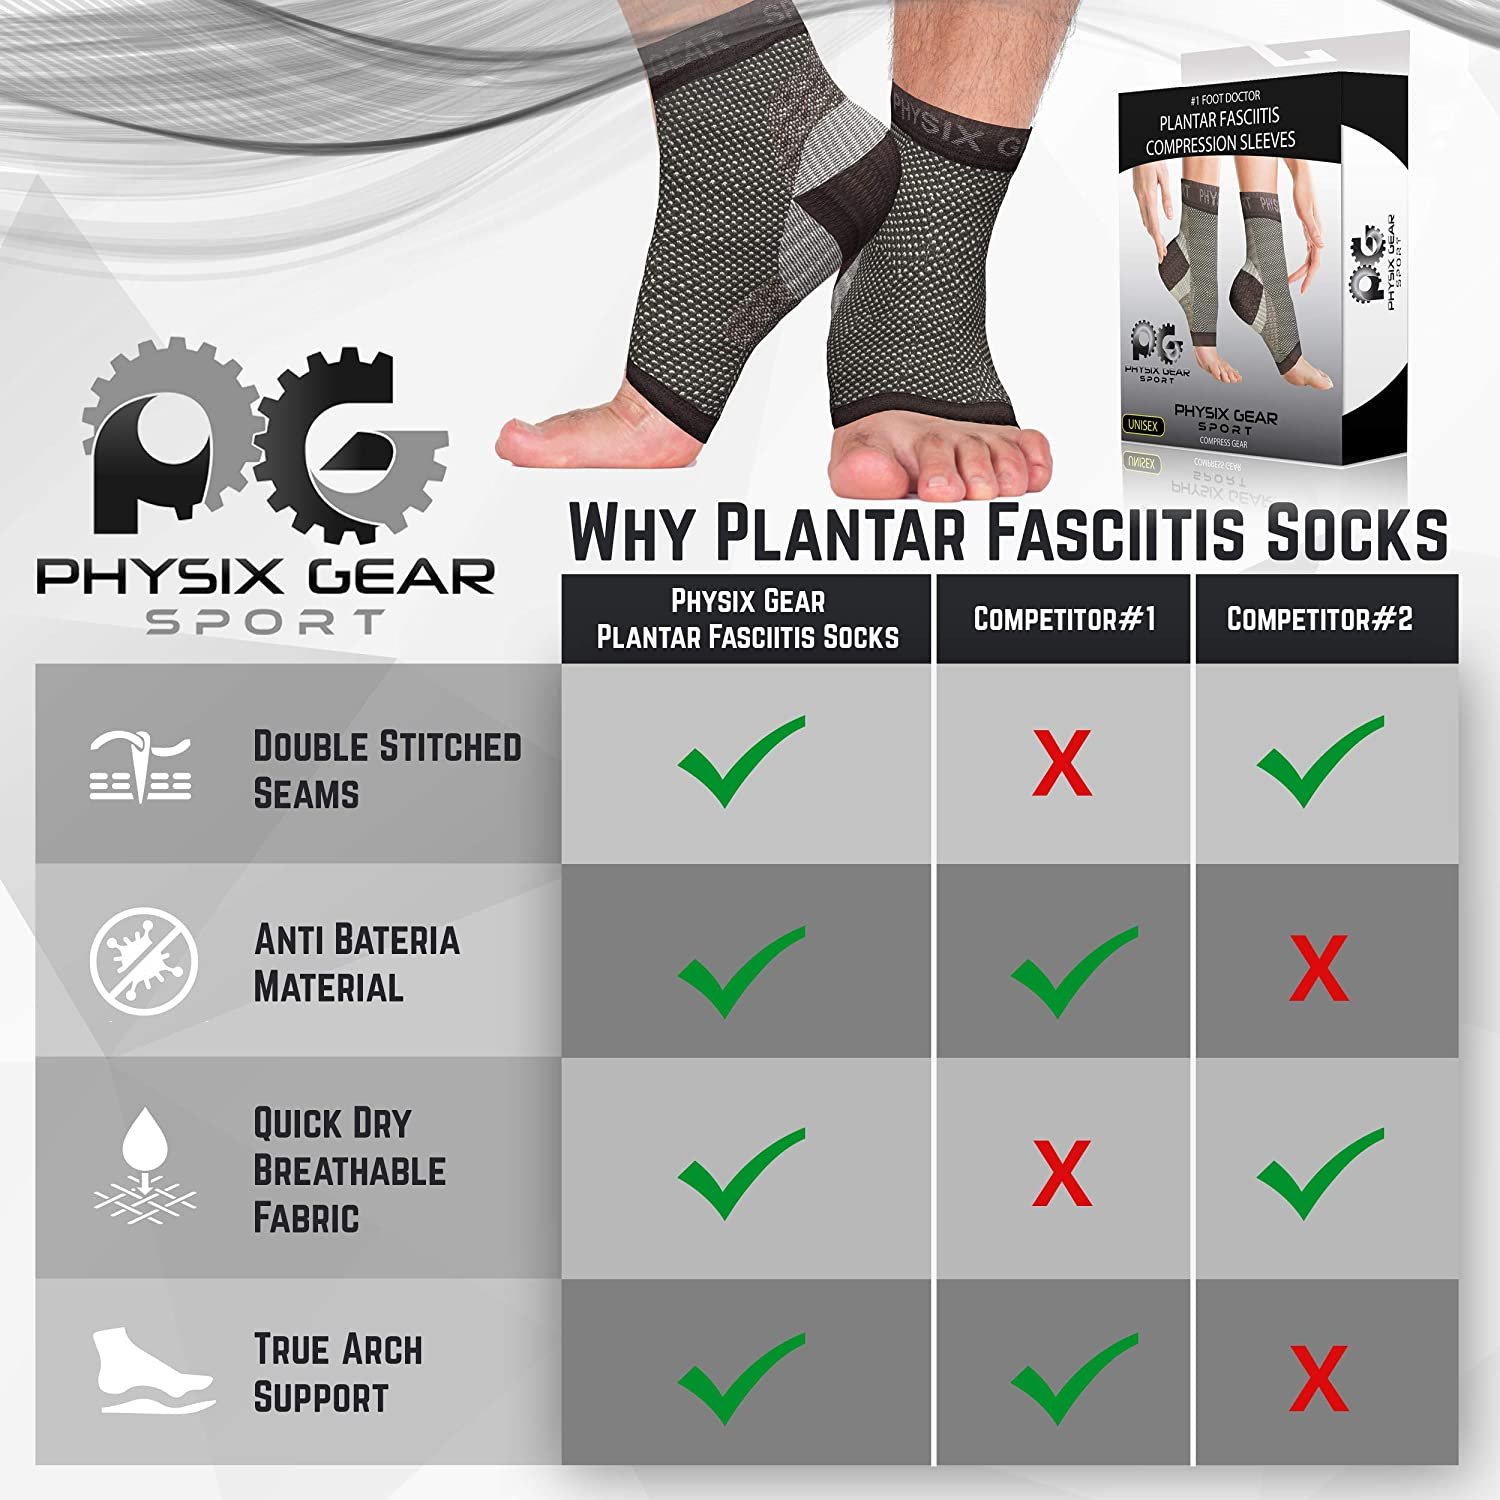 Washes Well Best 24//7 Compression Socks Foot Sleeve for Aching Feet /& Heel Pain Relief Plantar Fasciitis Socks with Arch Support for Men /& Women Holds Shape /& Better Than a Night Splint